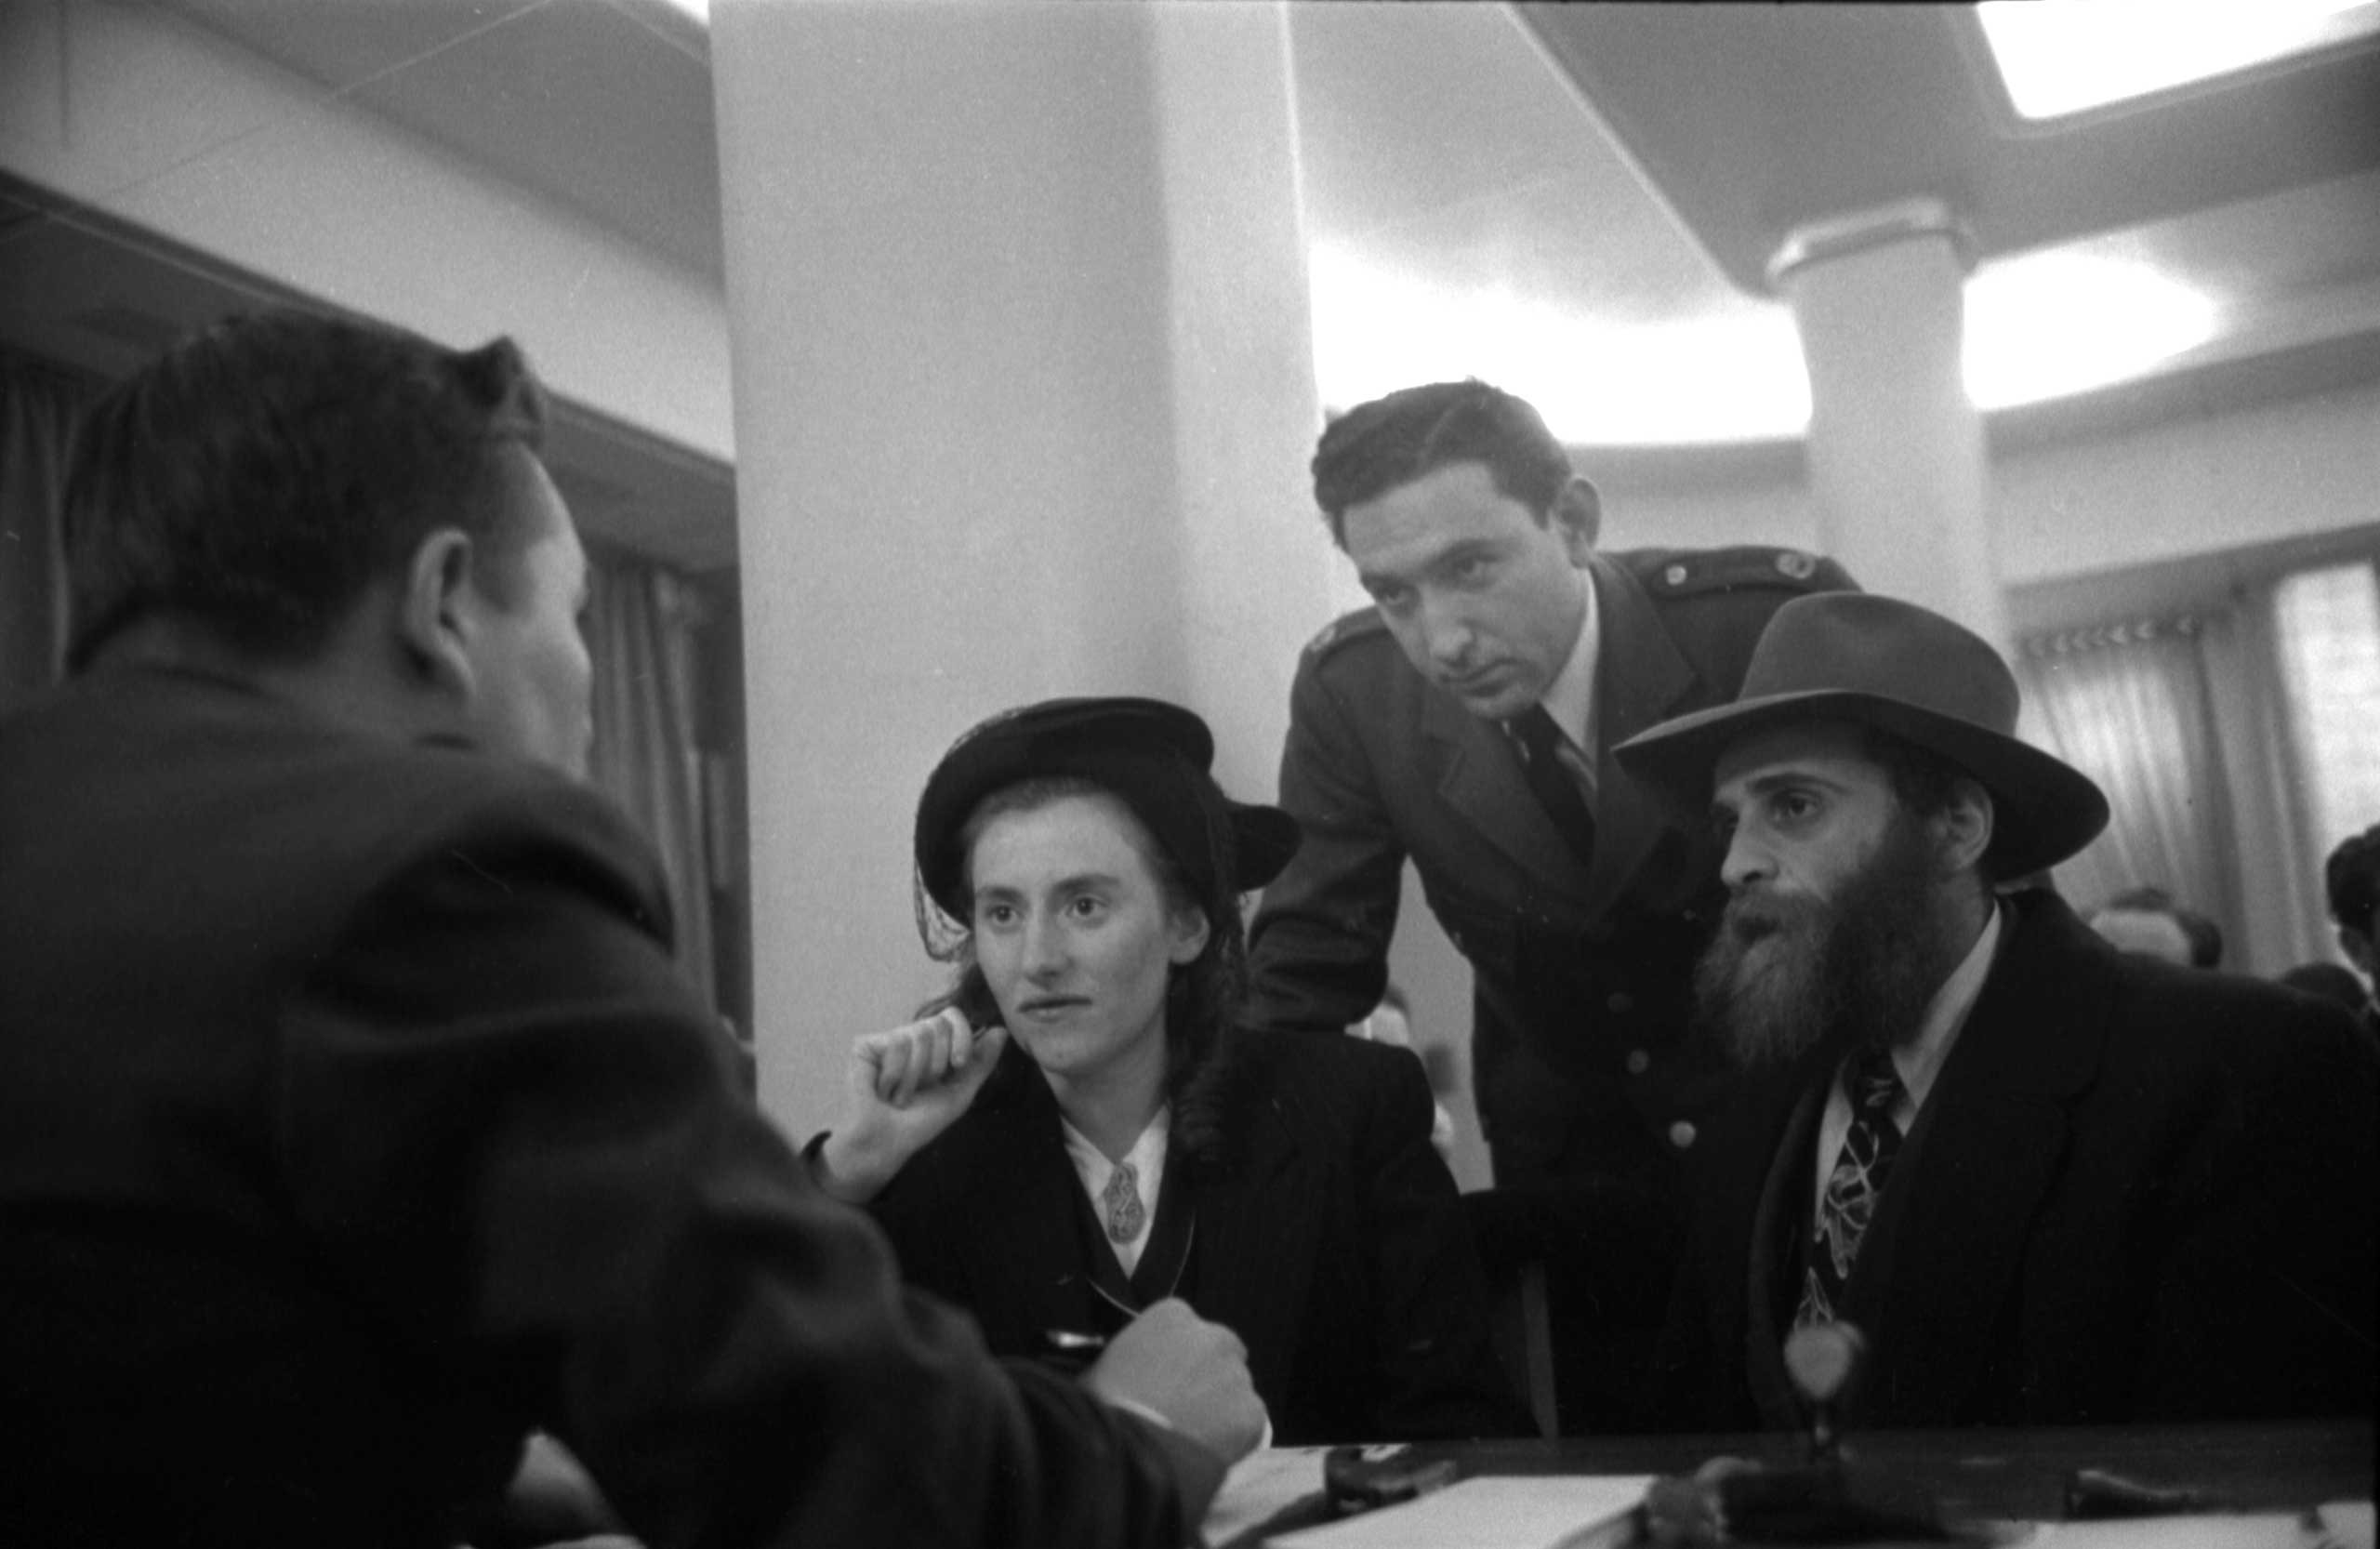 Rachel and Schulim Pewzner, from Warsaw, Poland, interviewed at Ellis Island, 1950.